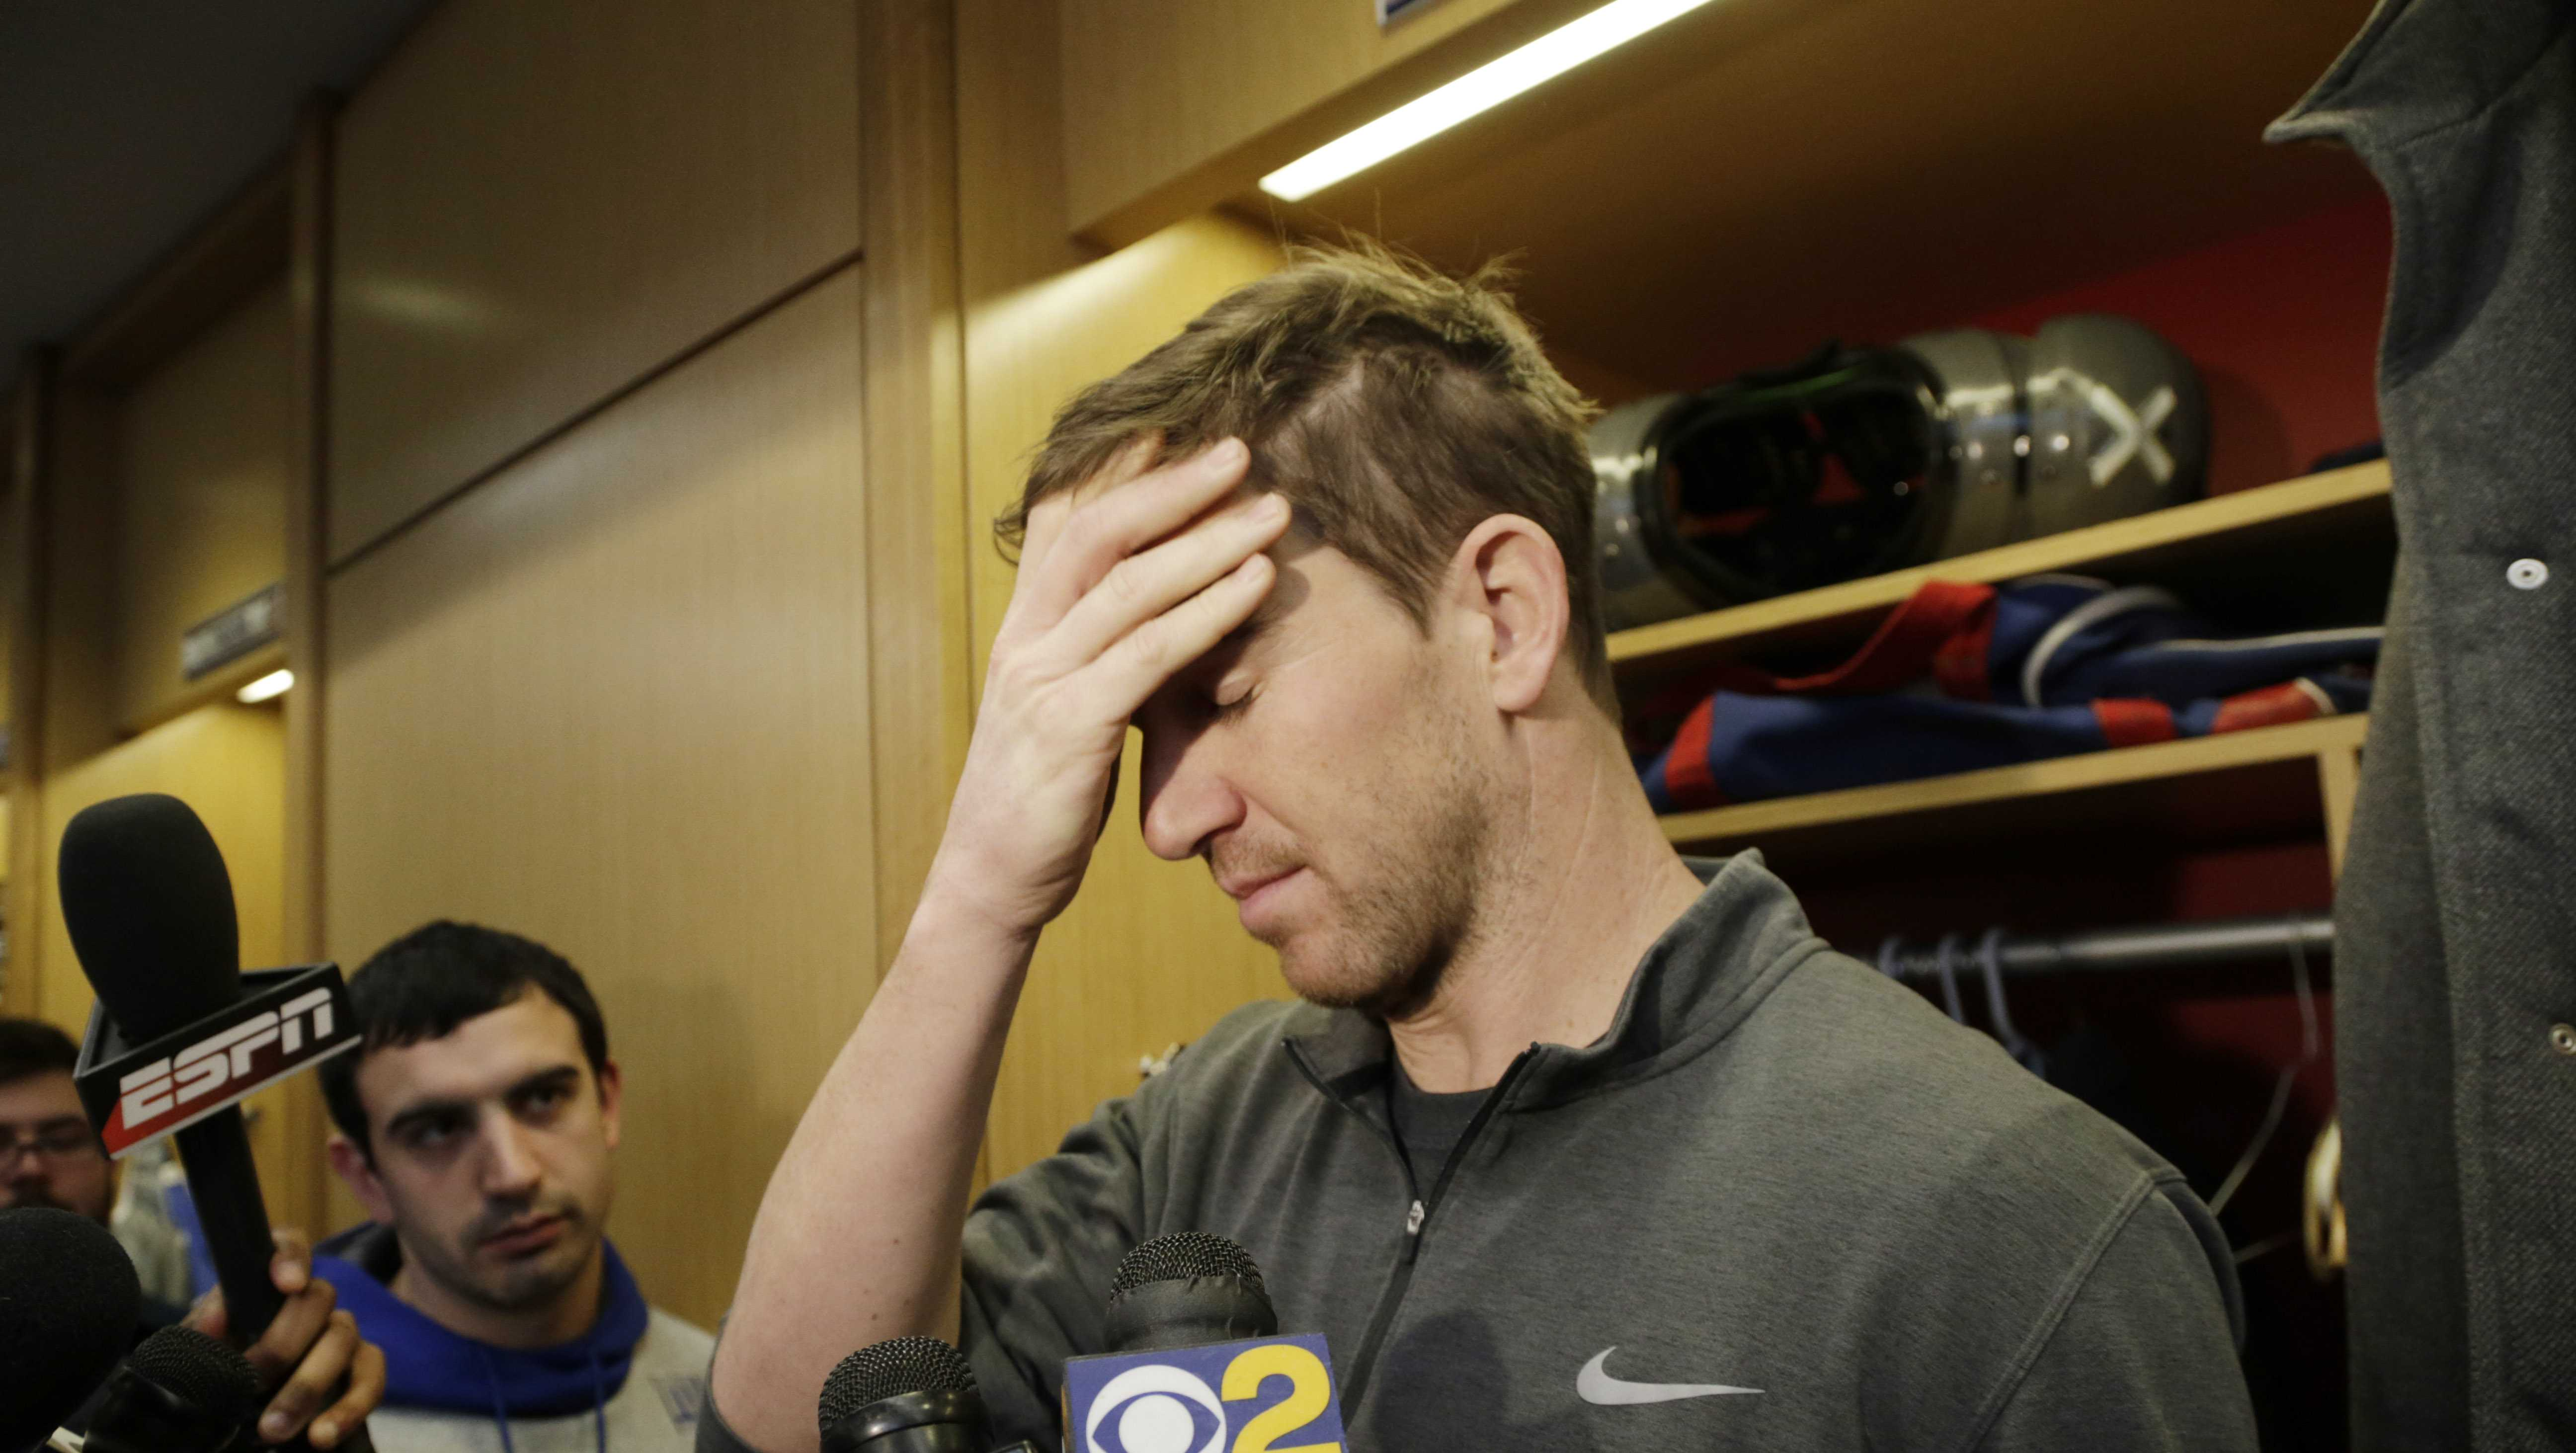 New York Giants quarterback Eli Manning gestures while speaking to reporters in the locker room in East Rutherford, N.J., Monday, Jan. 9, 2017.